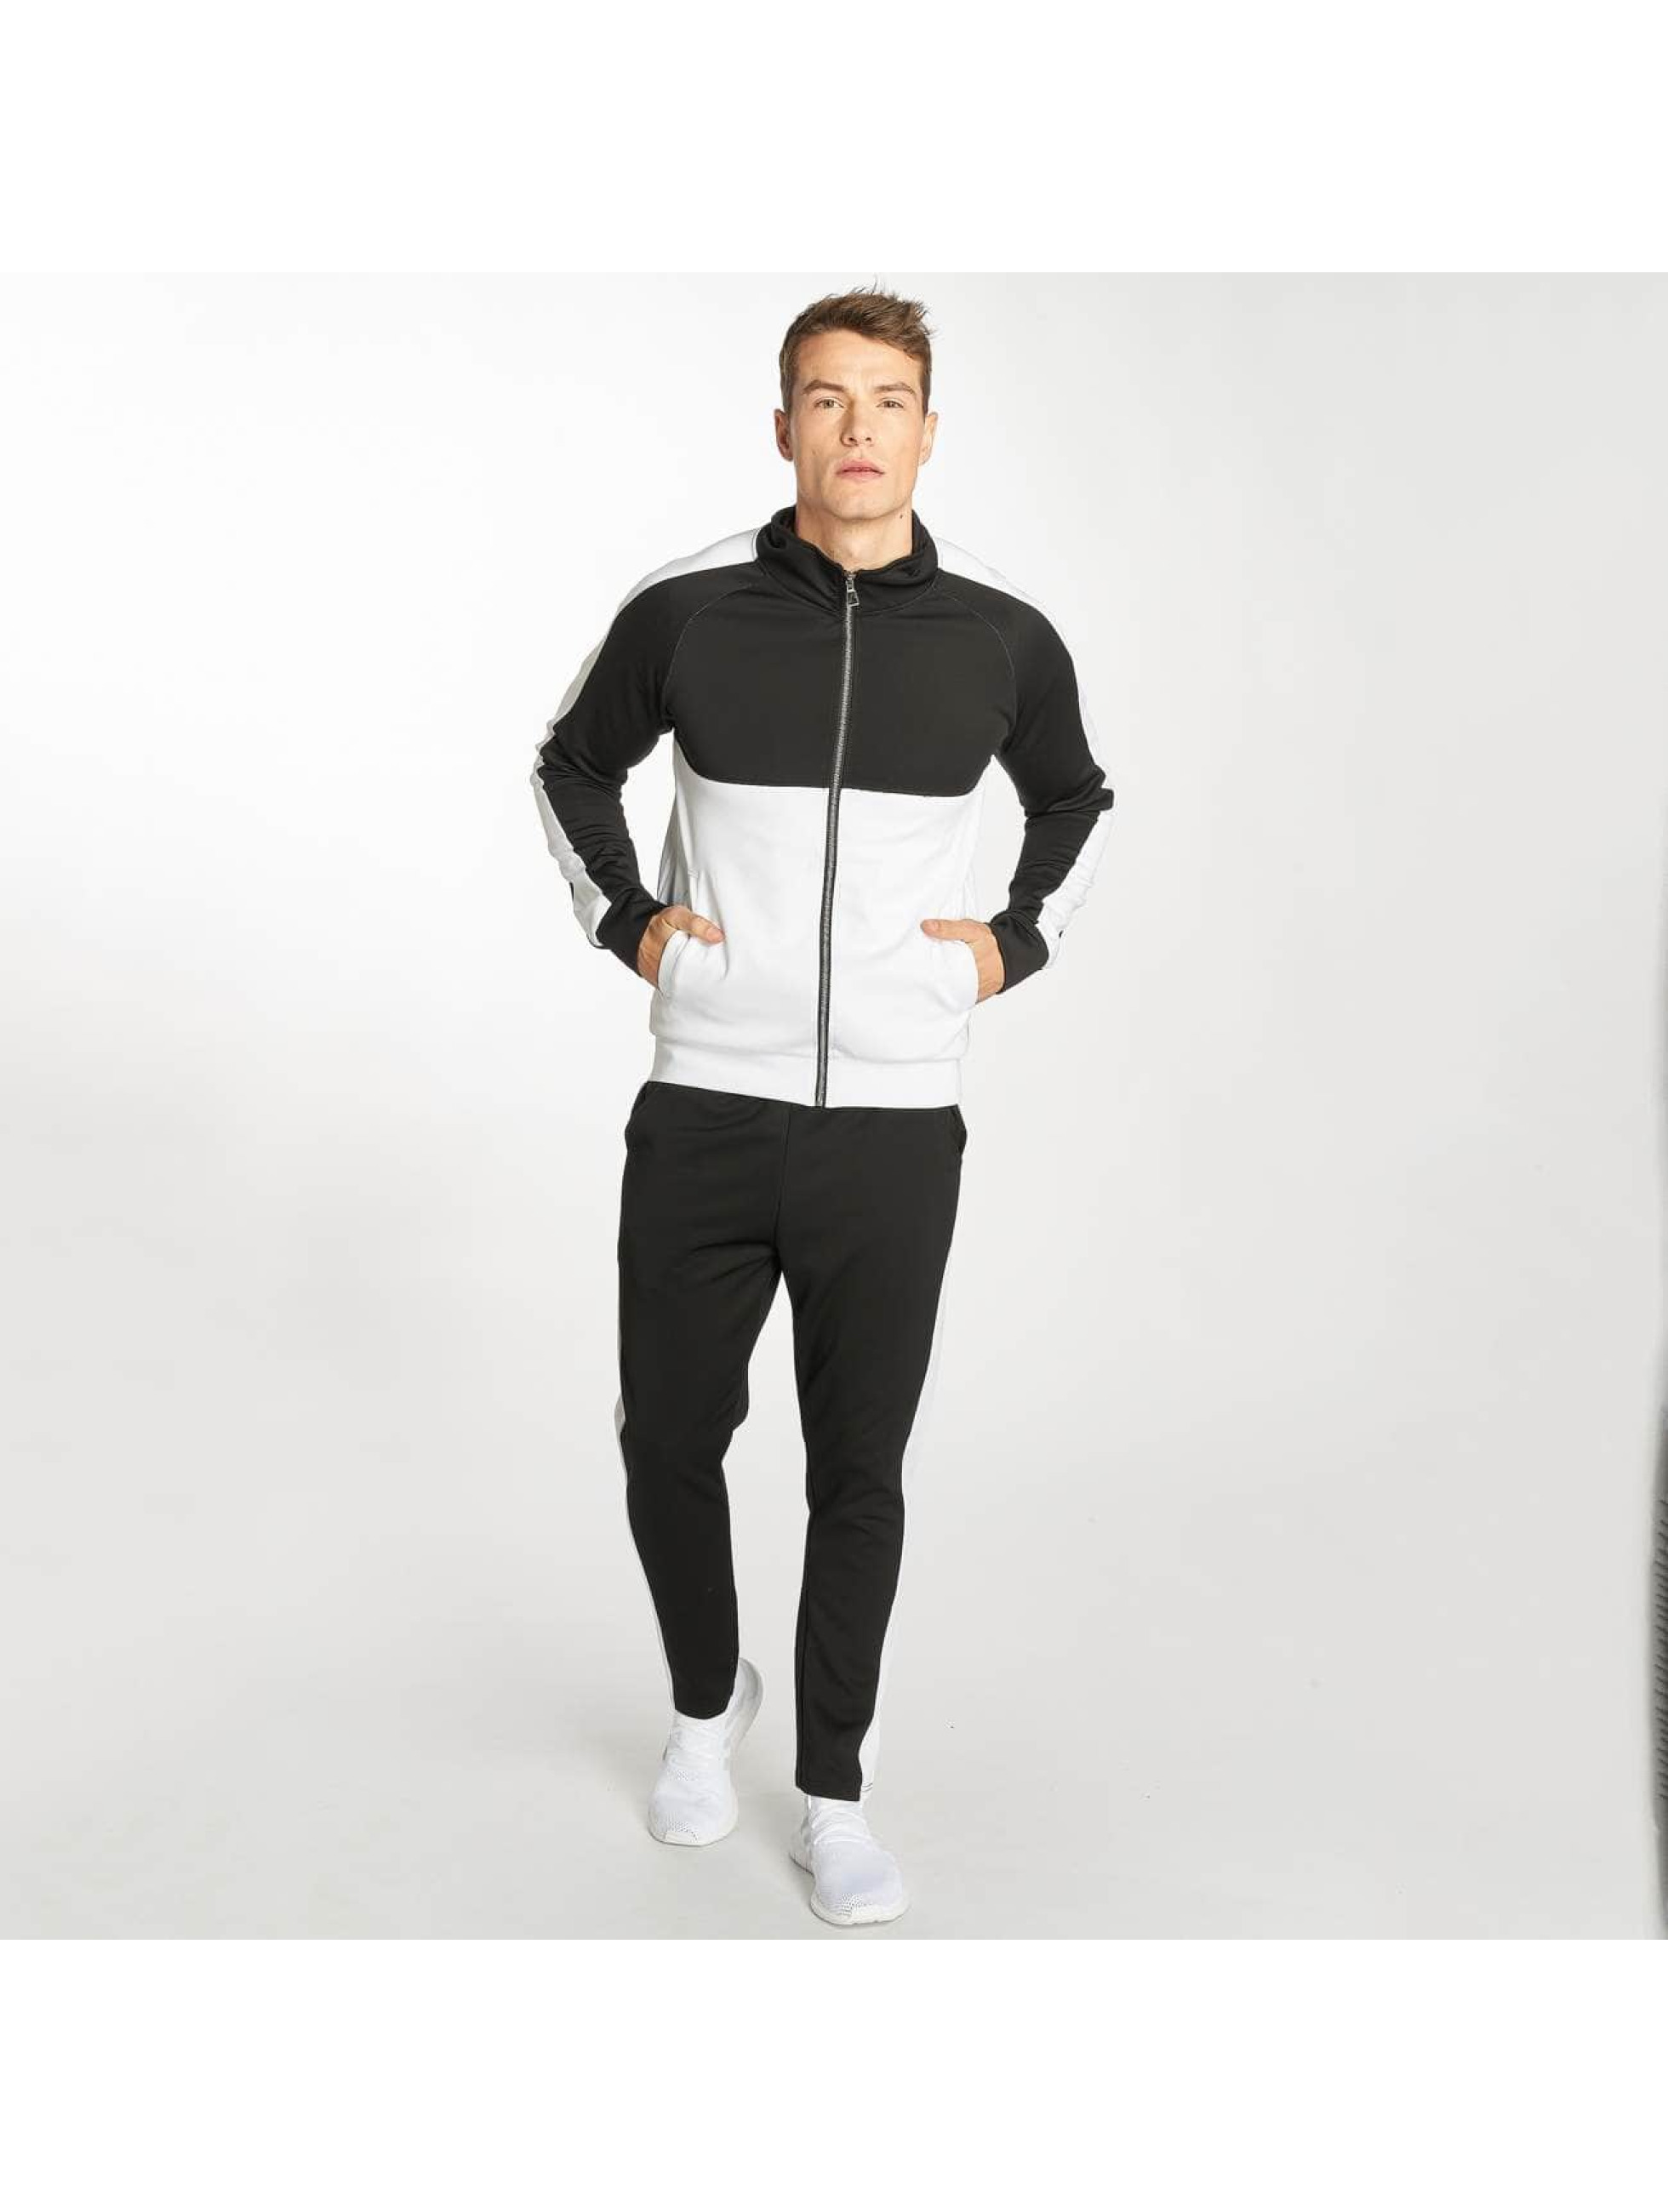 Zayne Paris Trainingspak Two-Tone zwart